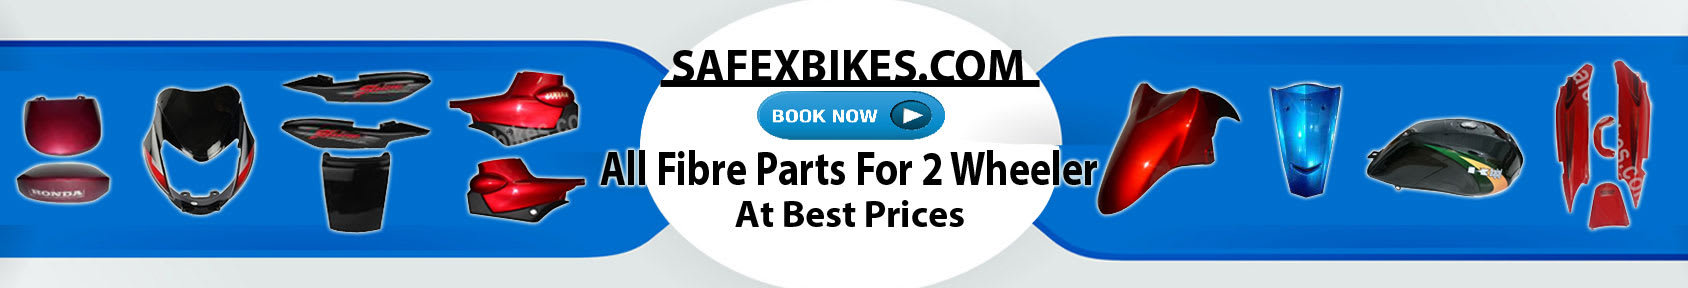 Special offers on Genuine Motorcycle Spare Parts And  		   Accessories - Get fibre parts at best prices